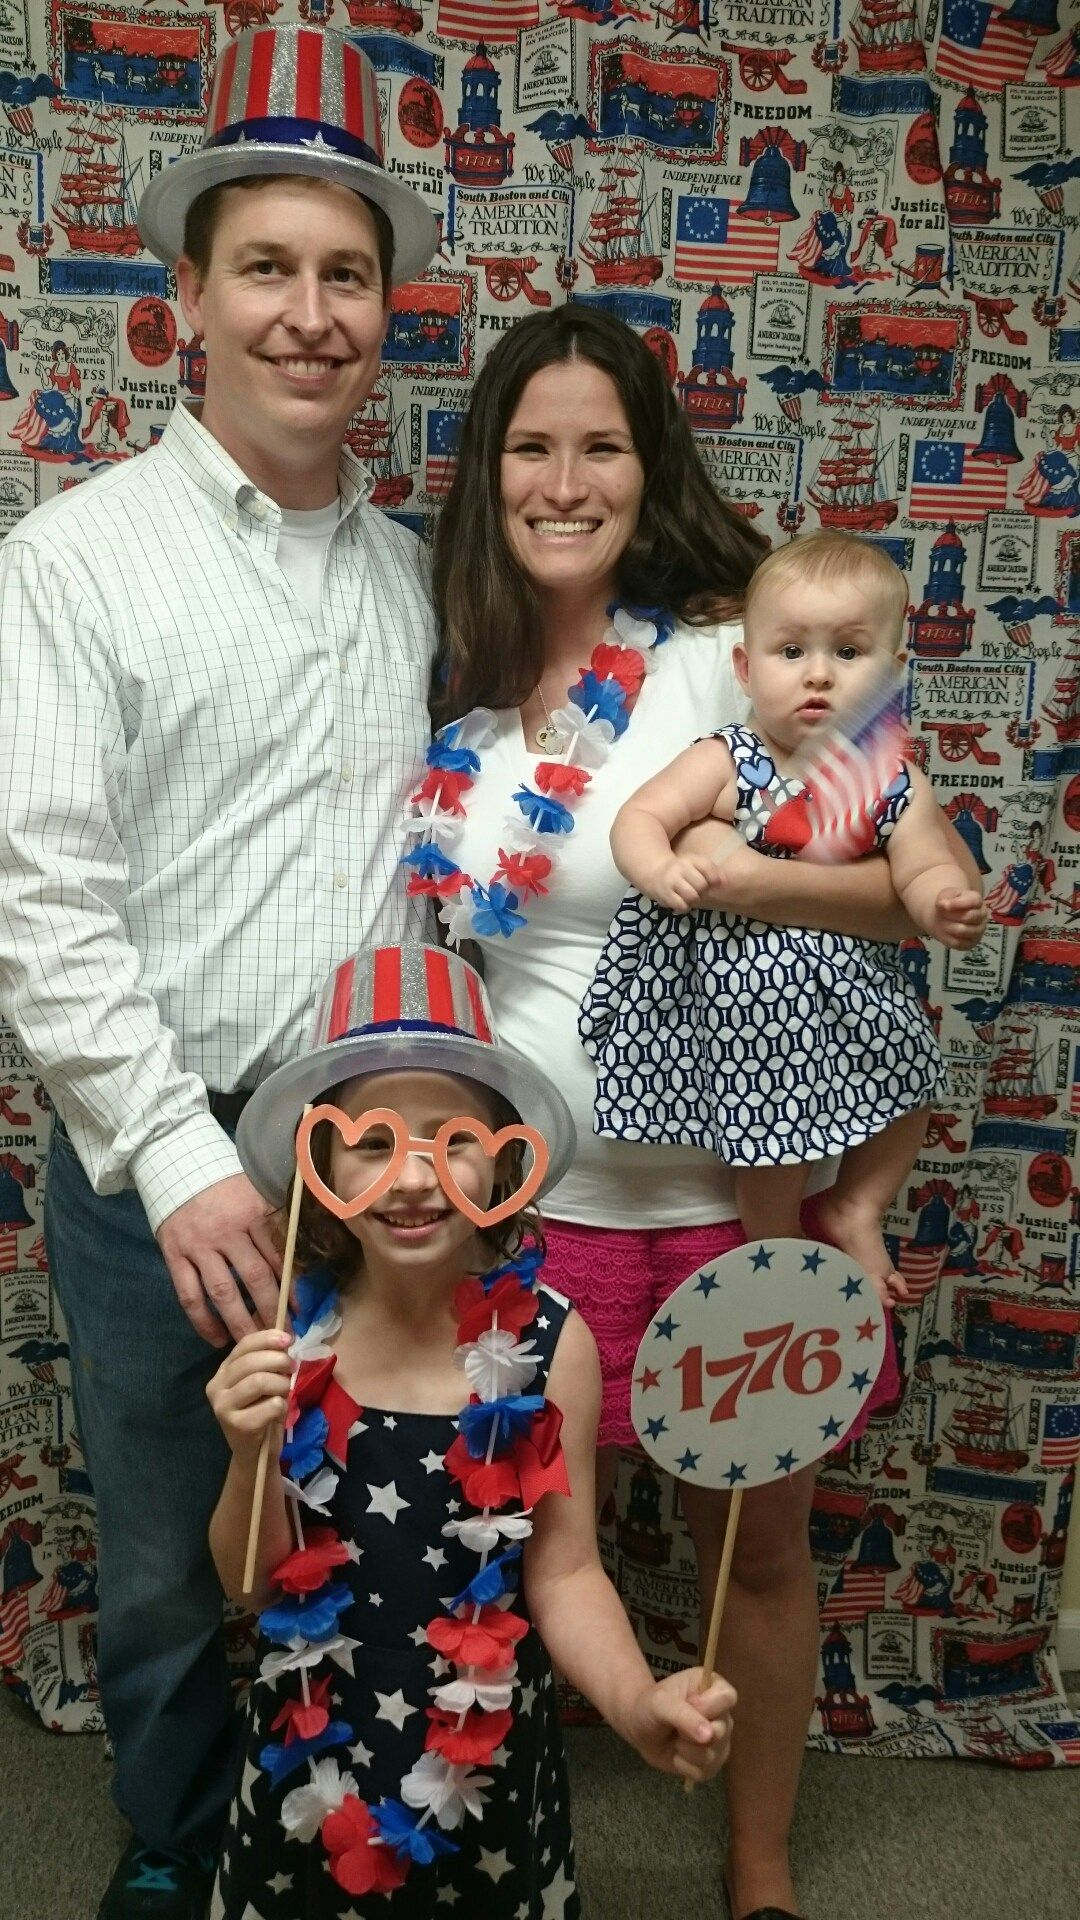 Hello all! I hope you're having a wonderful week. We are having a busy but good week. We started our week with a July Fourth picnic at church. My oldest is still in a daily swim class. …